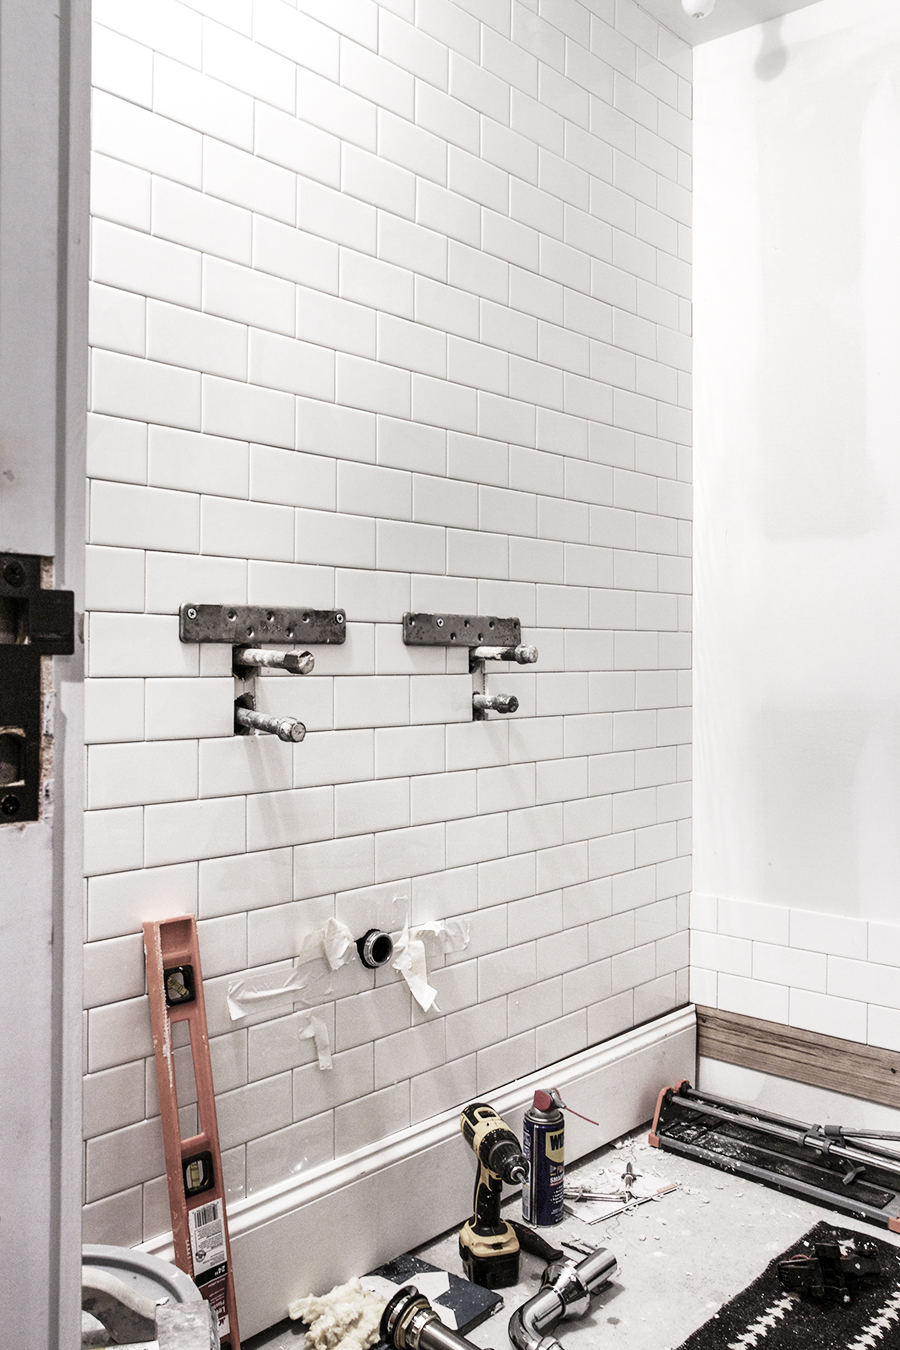 Bathroom Progress | Tiling with Subway tile